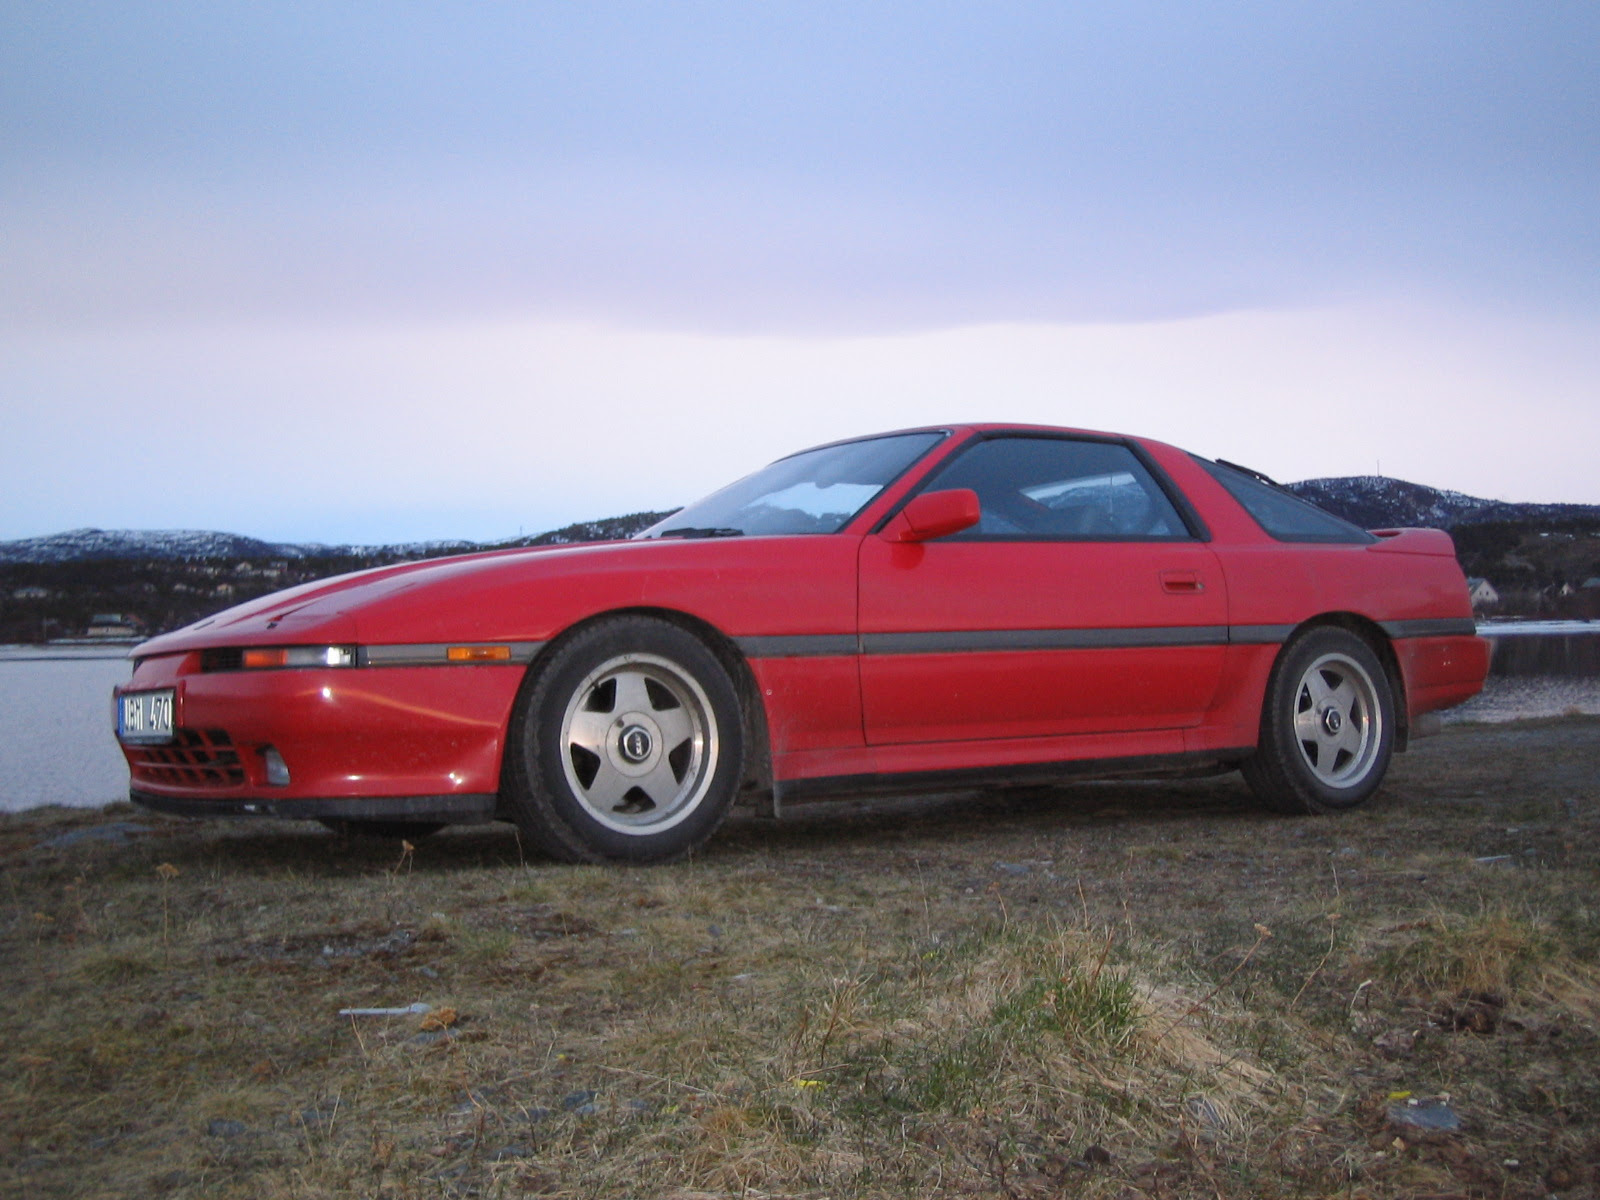 1991 Toyota Supra 2 Dr Turbo Hatchback picture, exterior